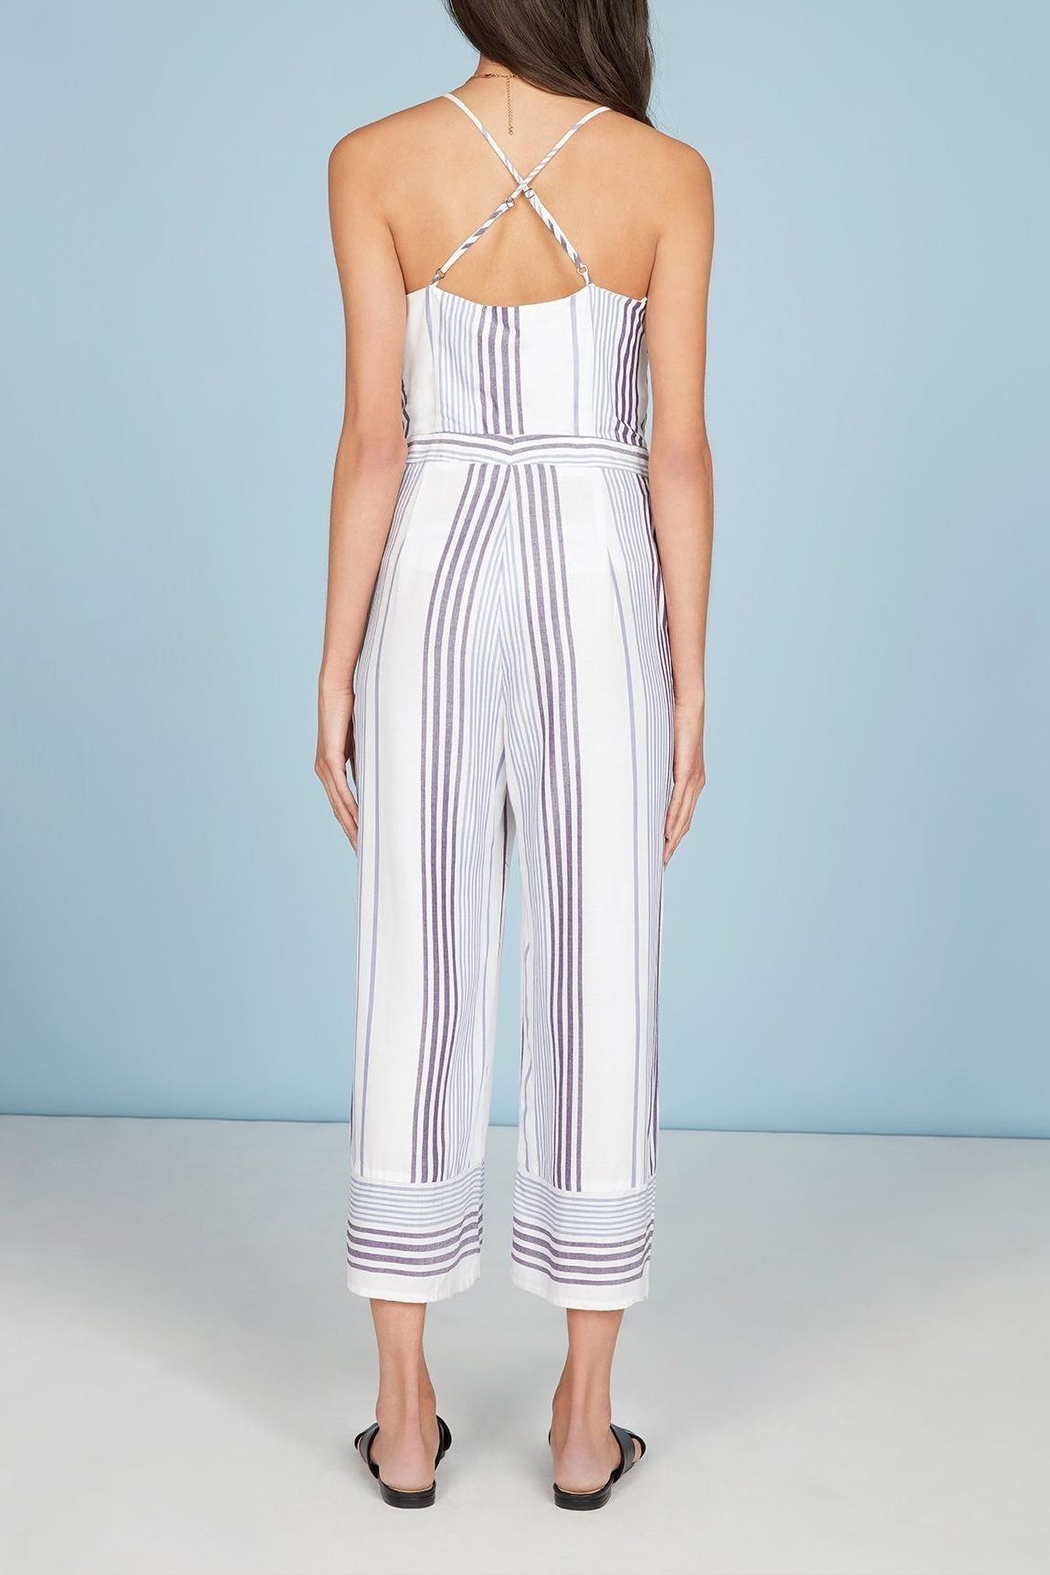 Willow & Clay Hali Jumpsuit - Side Cropped Image